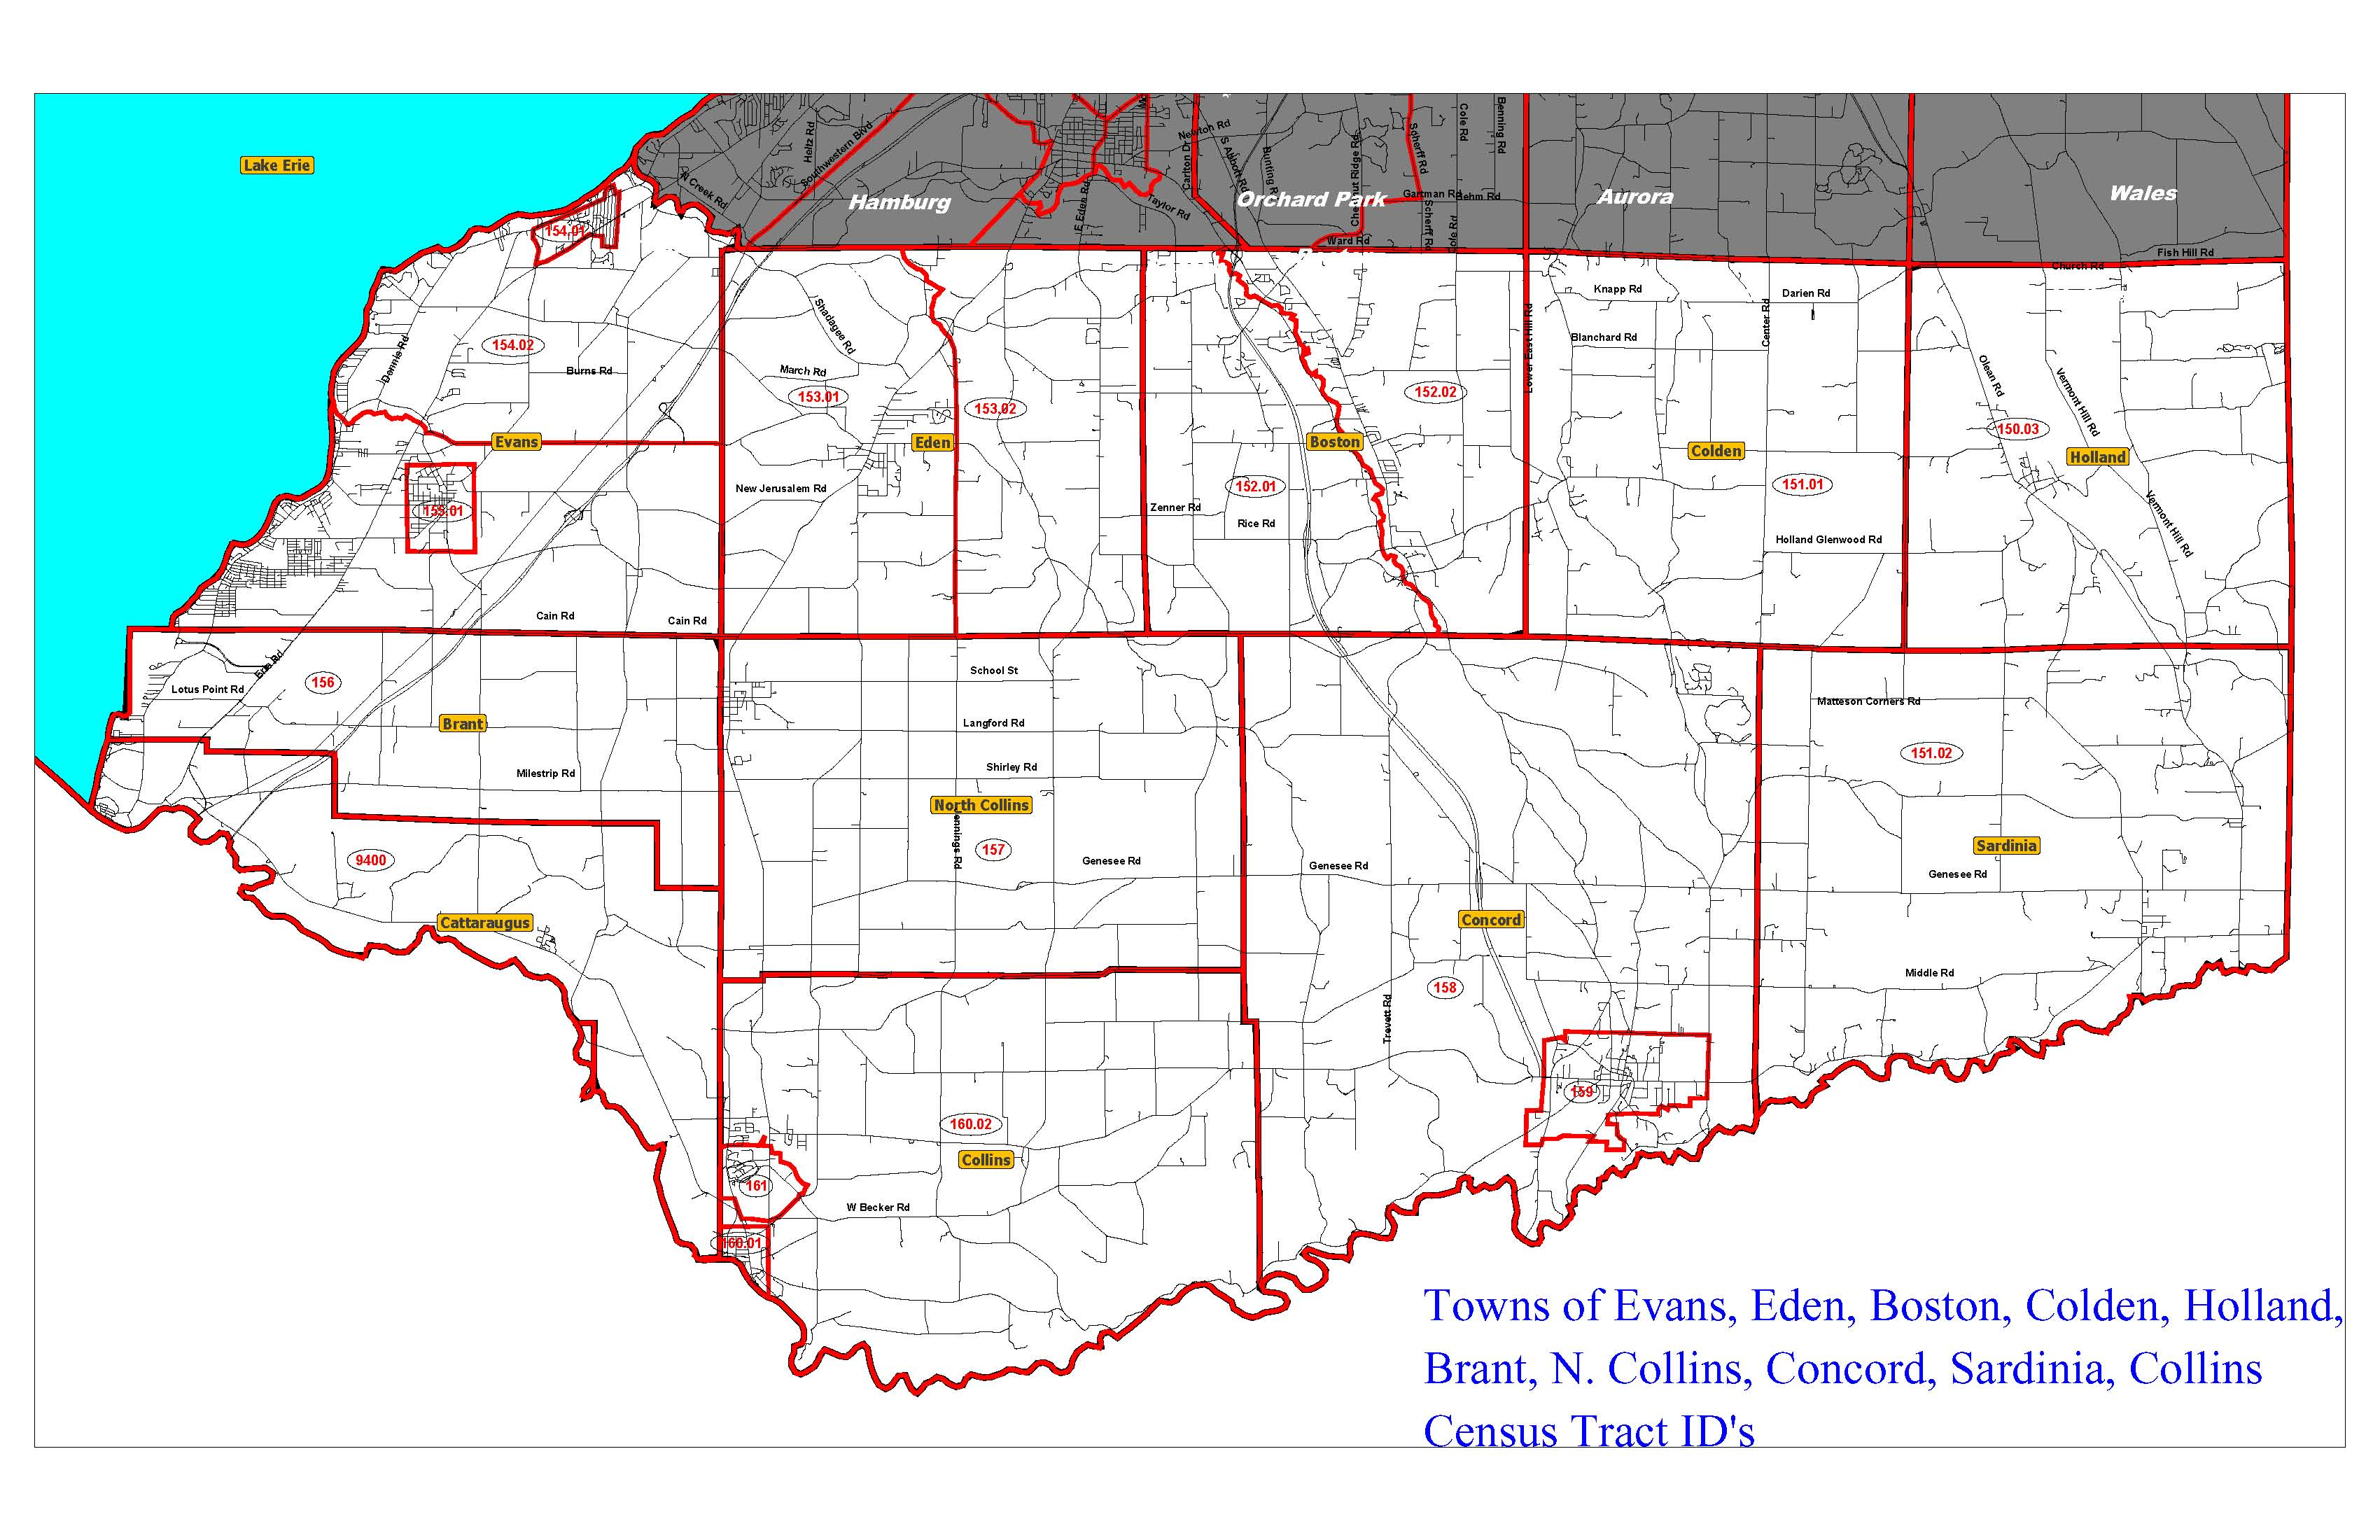 Map Of Southern Tier Towns Indicating Census Tracts Erie County - Map of southern tier of us